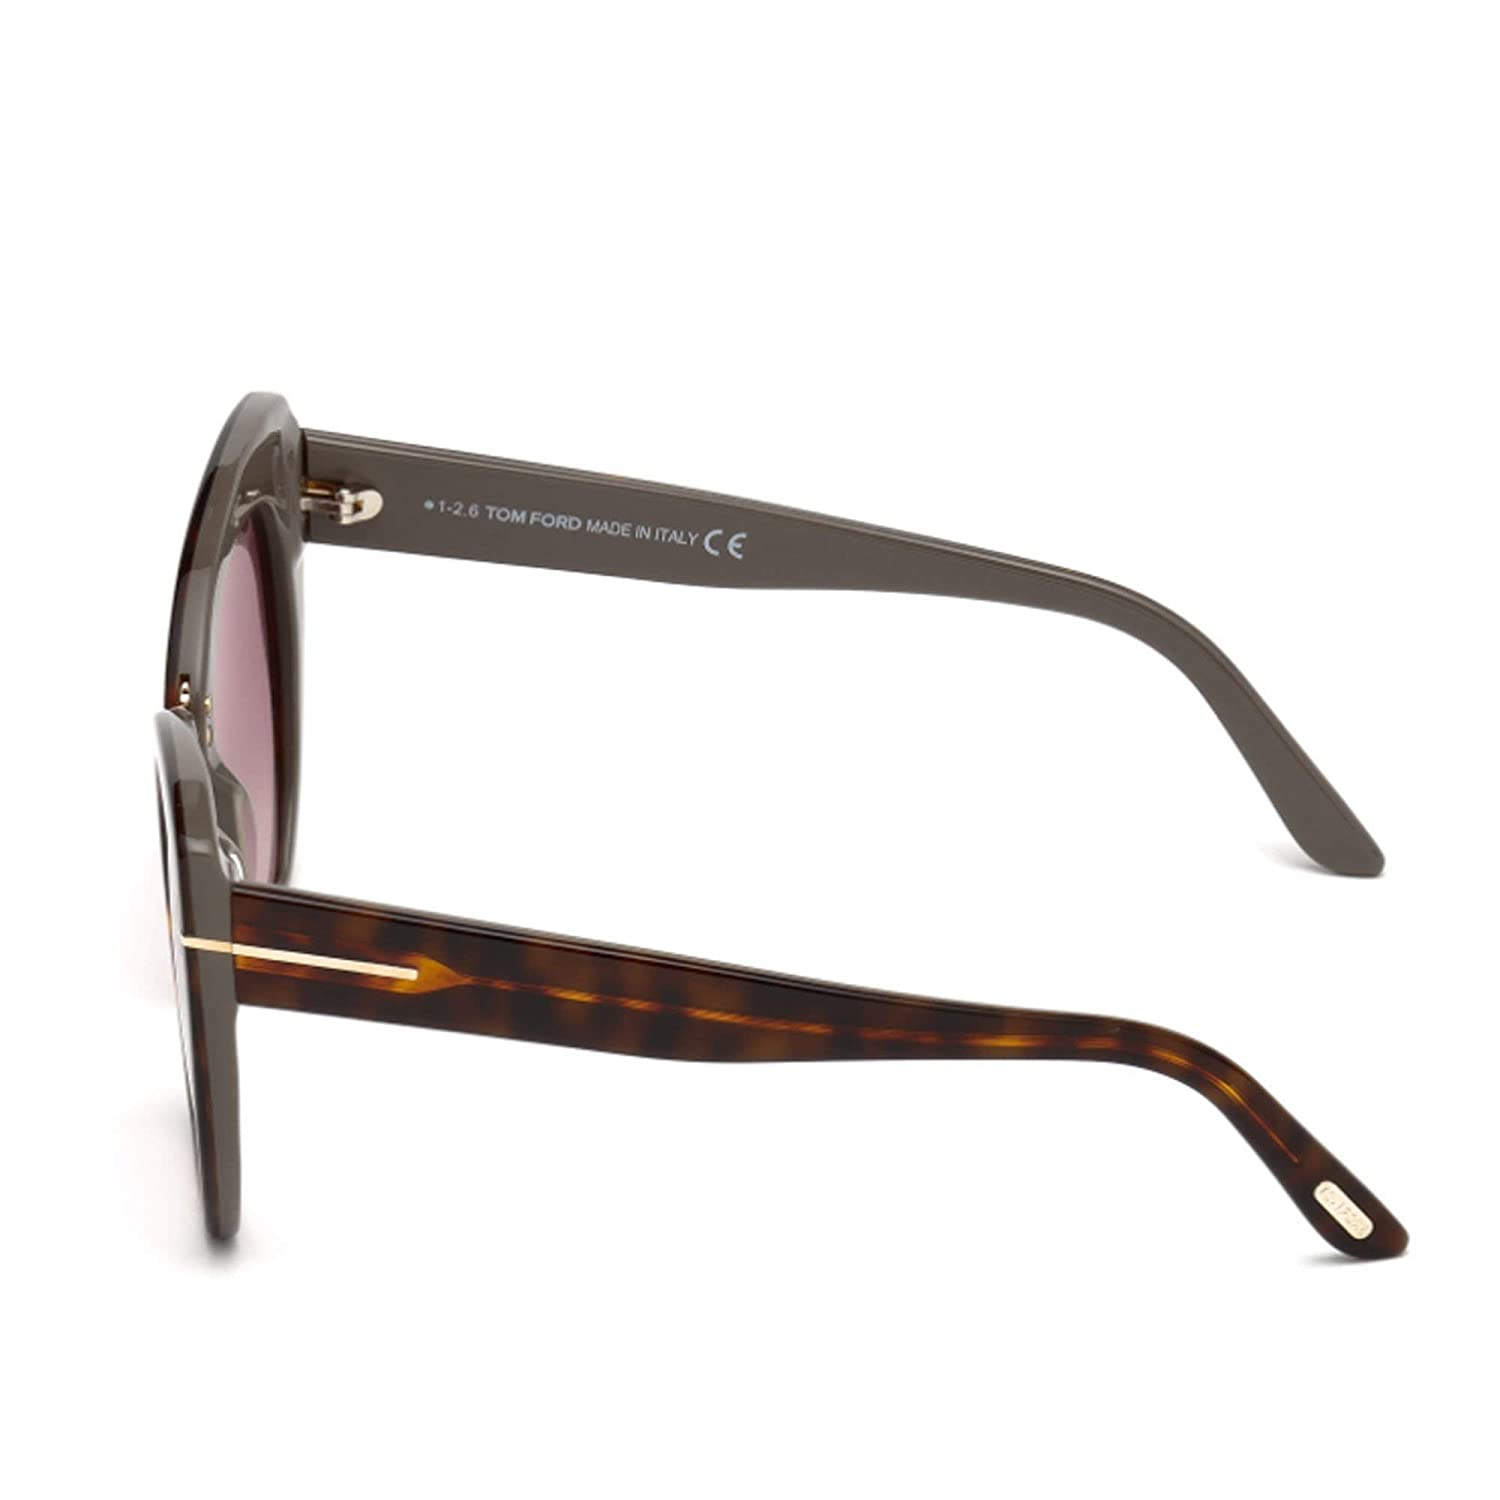 2699e67b43d Sunglasses Tom Ford FT 0553 Samantha- 02 56G havana other   brown mirror at  Amazon Men s Clothing store